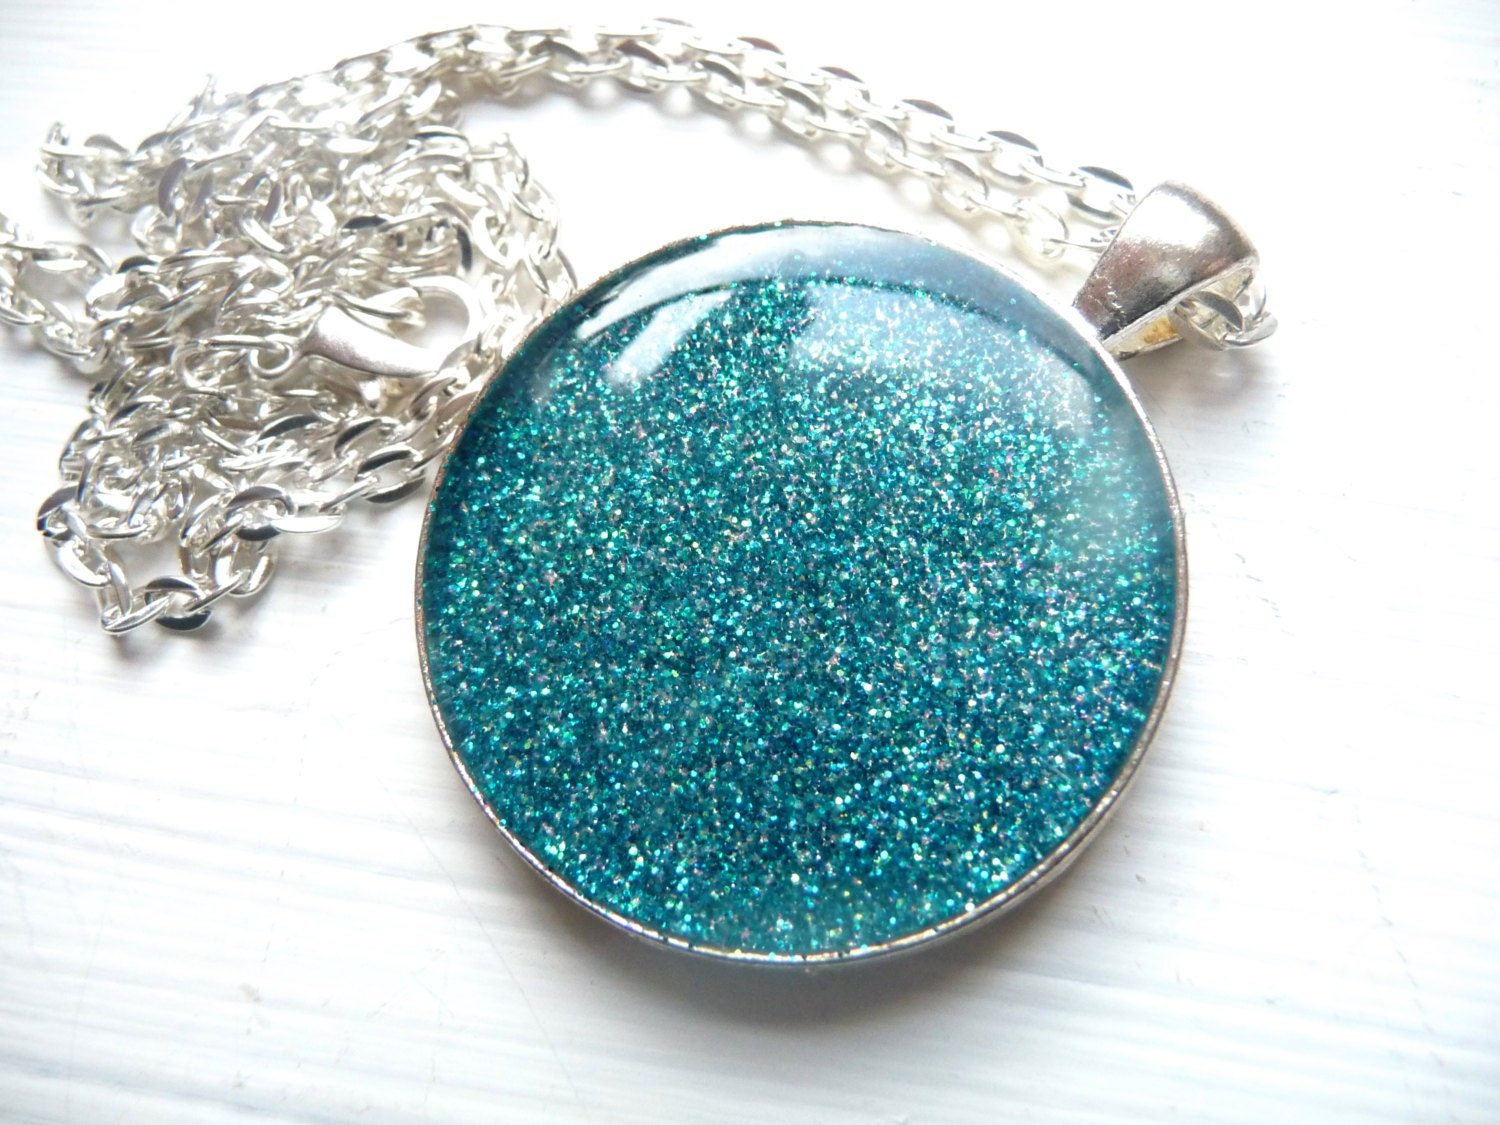 Blue Teal Glitter Resin Pendant on 24 inch Silver Chain - Mylana